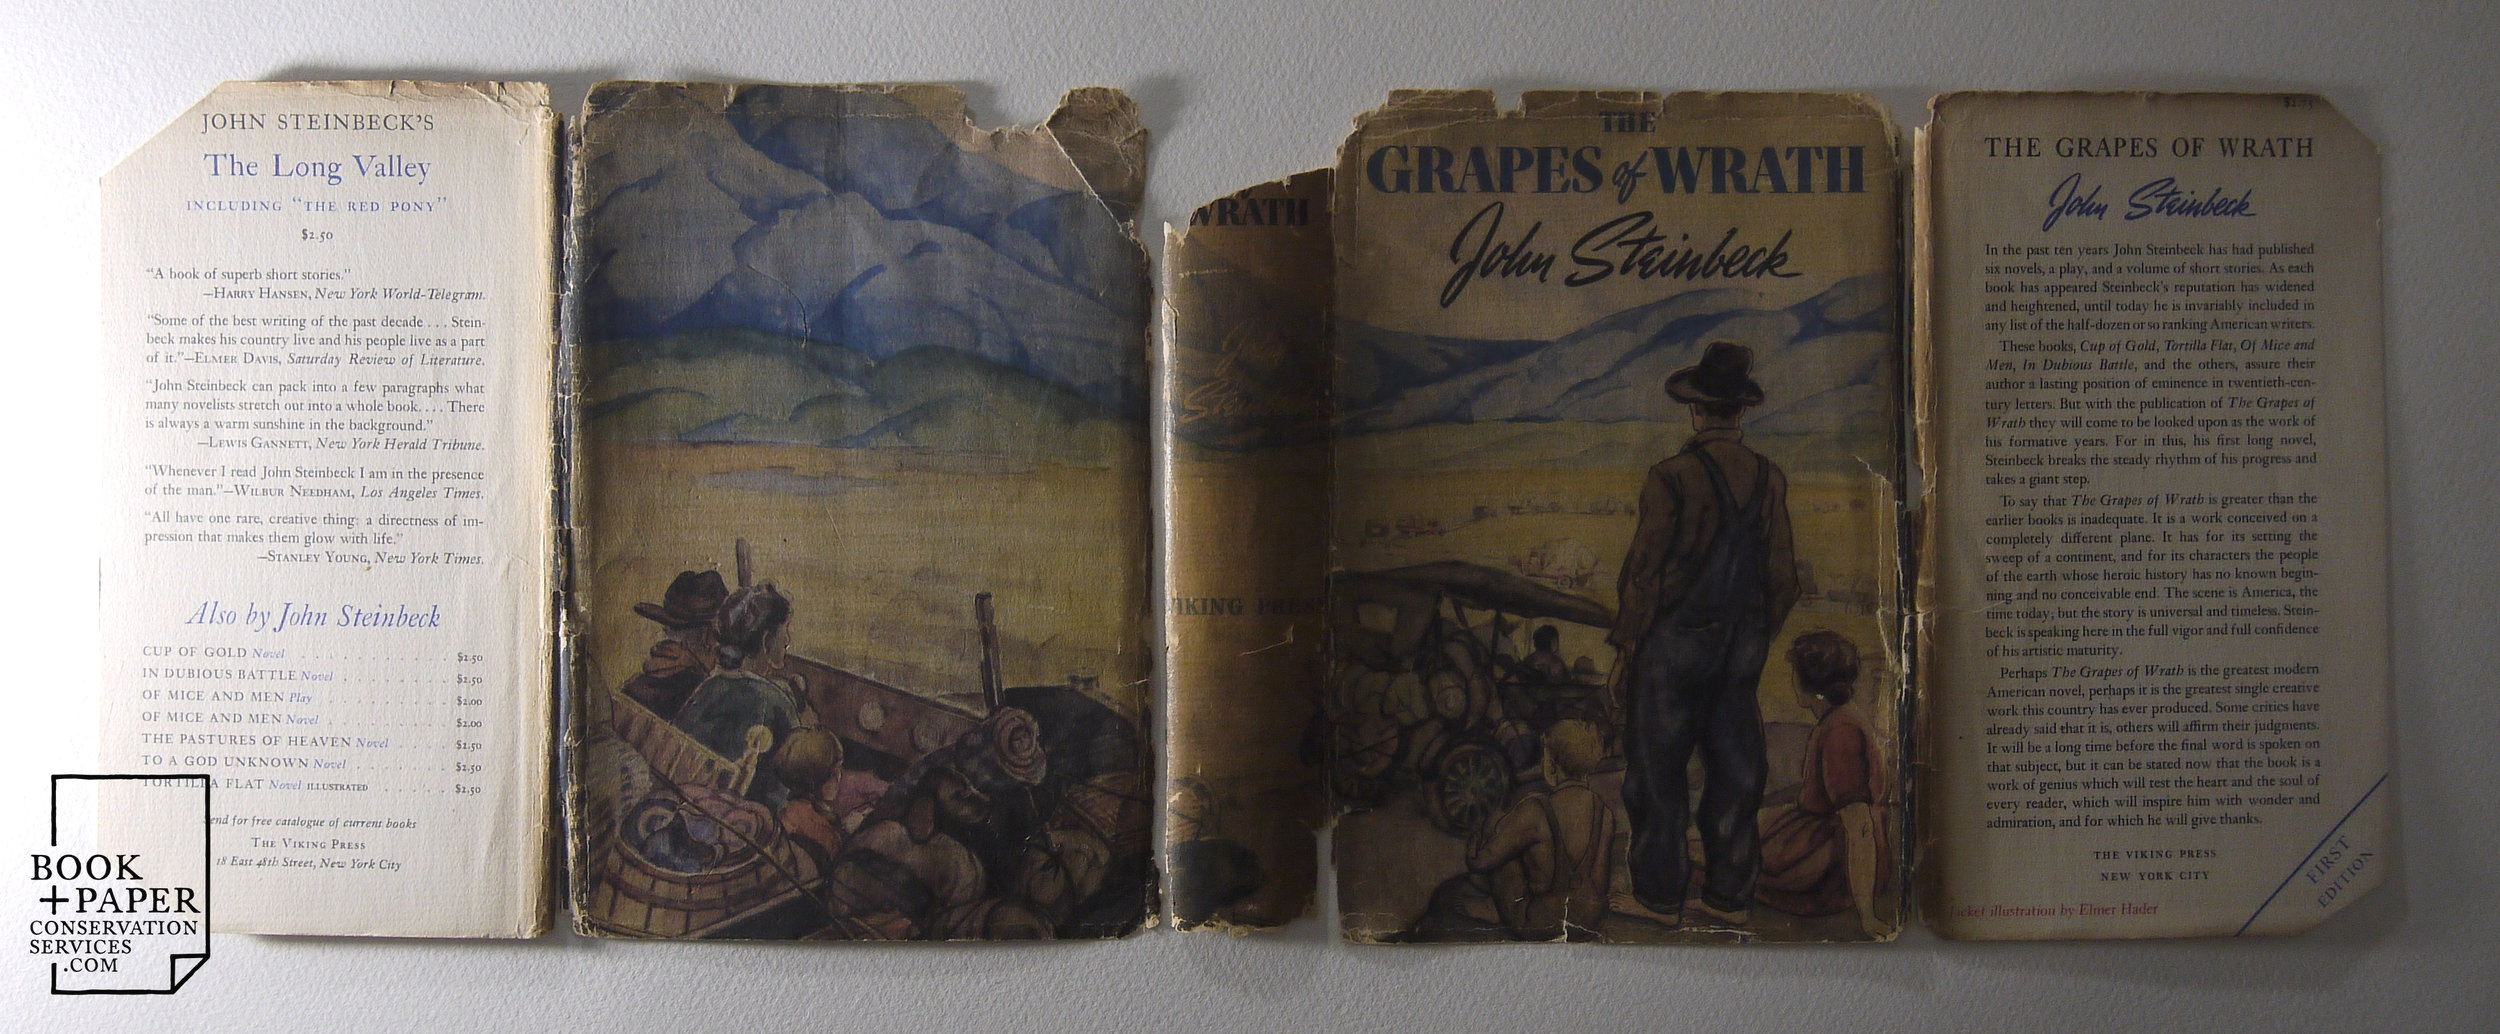 The Grapes of Wrath, 1st edition, dust jacket in raking light before restoration.